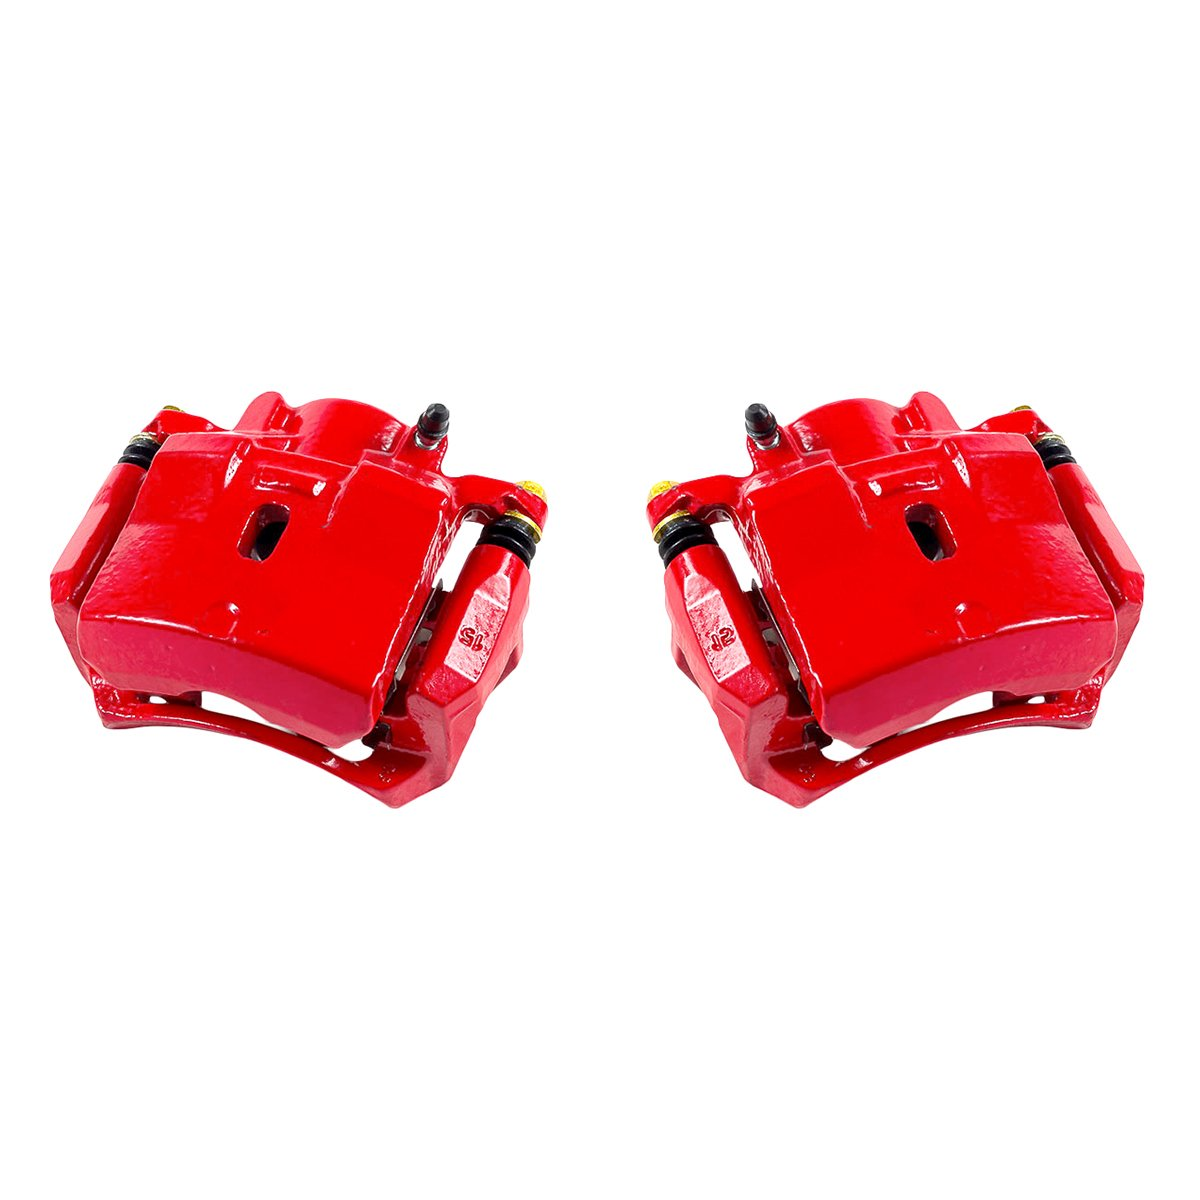 CCK01569 2 FRONT Performance Grade Red Powder Coated Semi-Loaded Caliper Assembly Pair Set